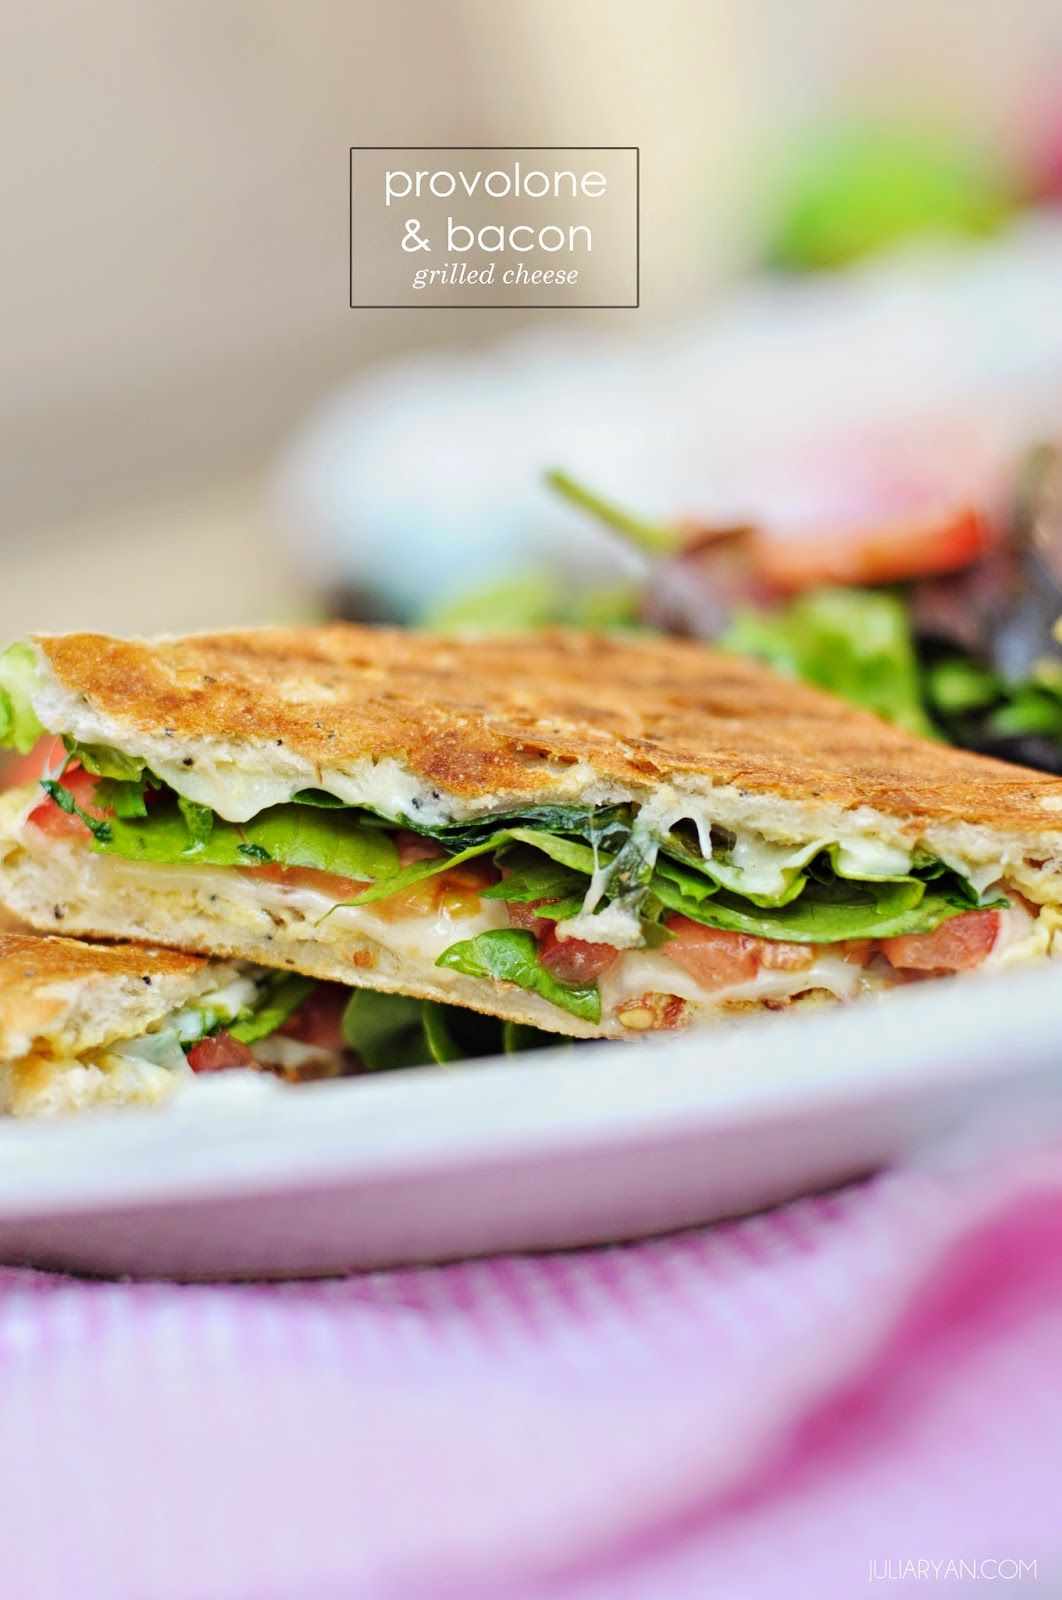 Gourmet Grilled Cheese | Picnic foods, Healthy picnic ...